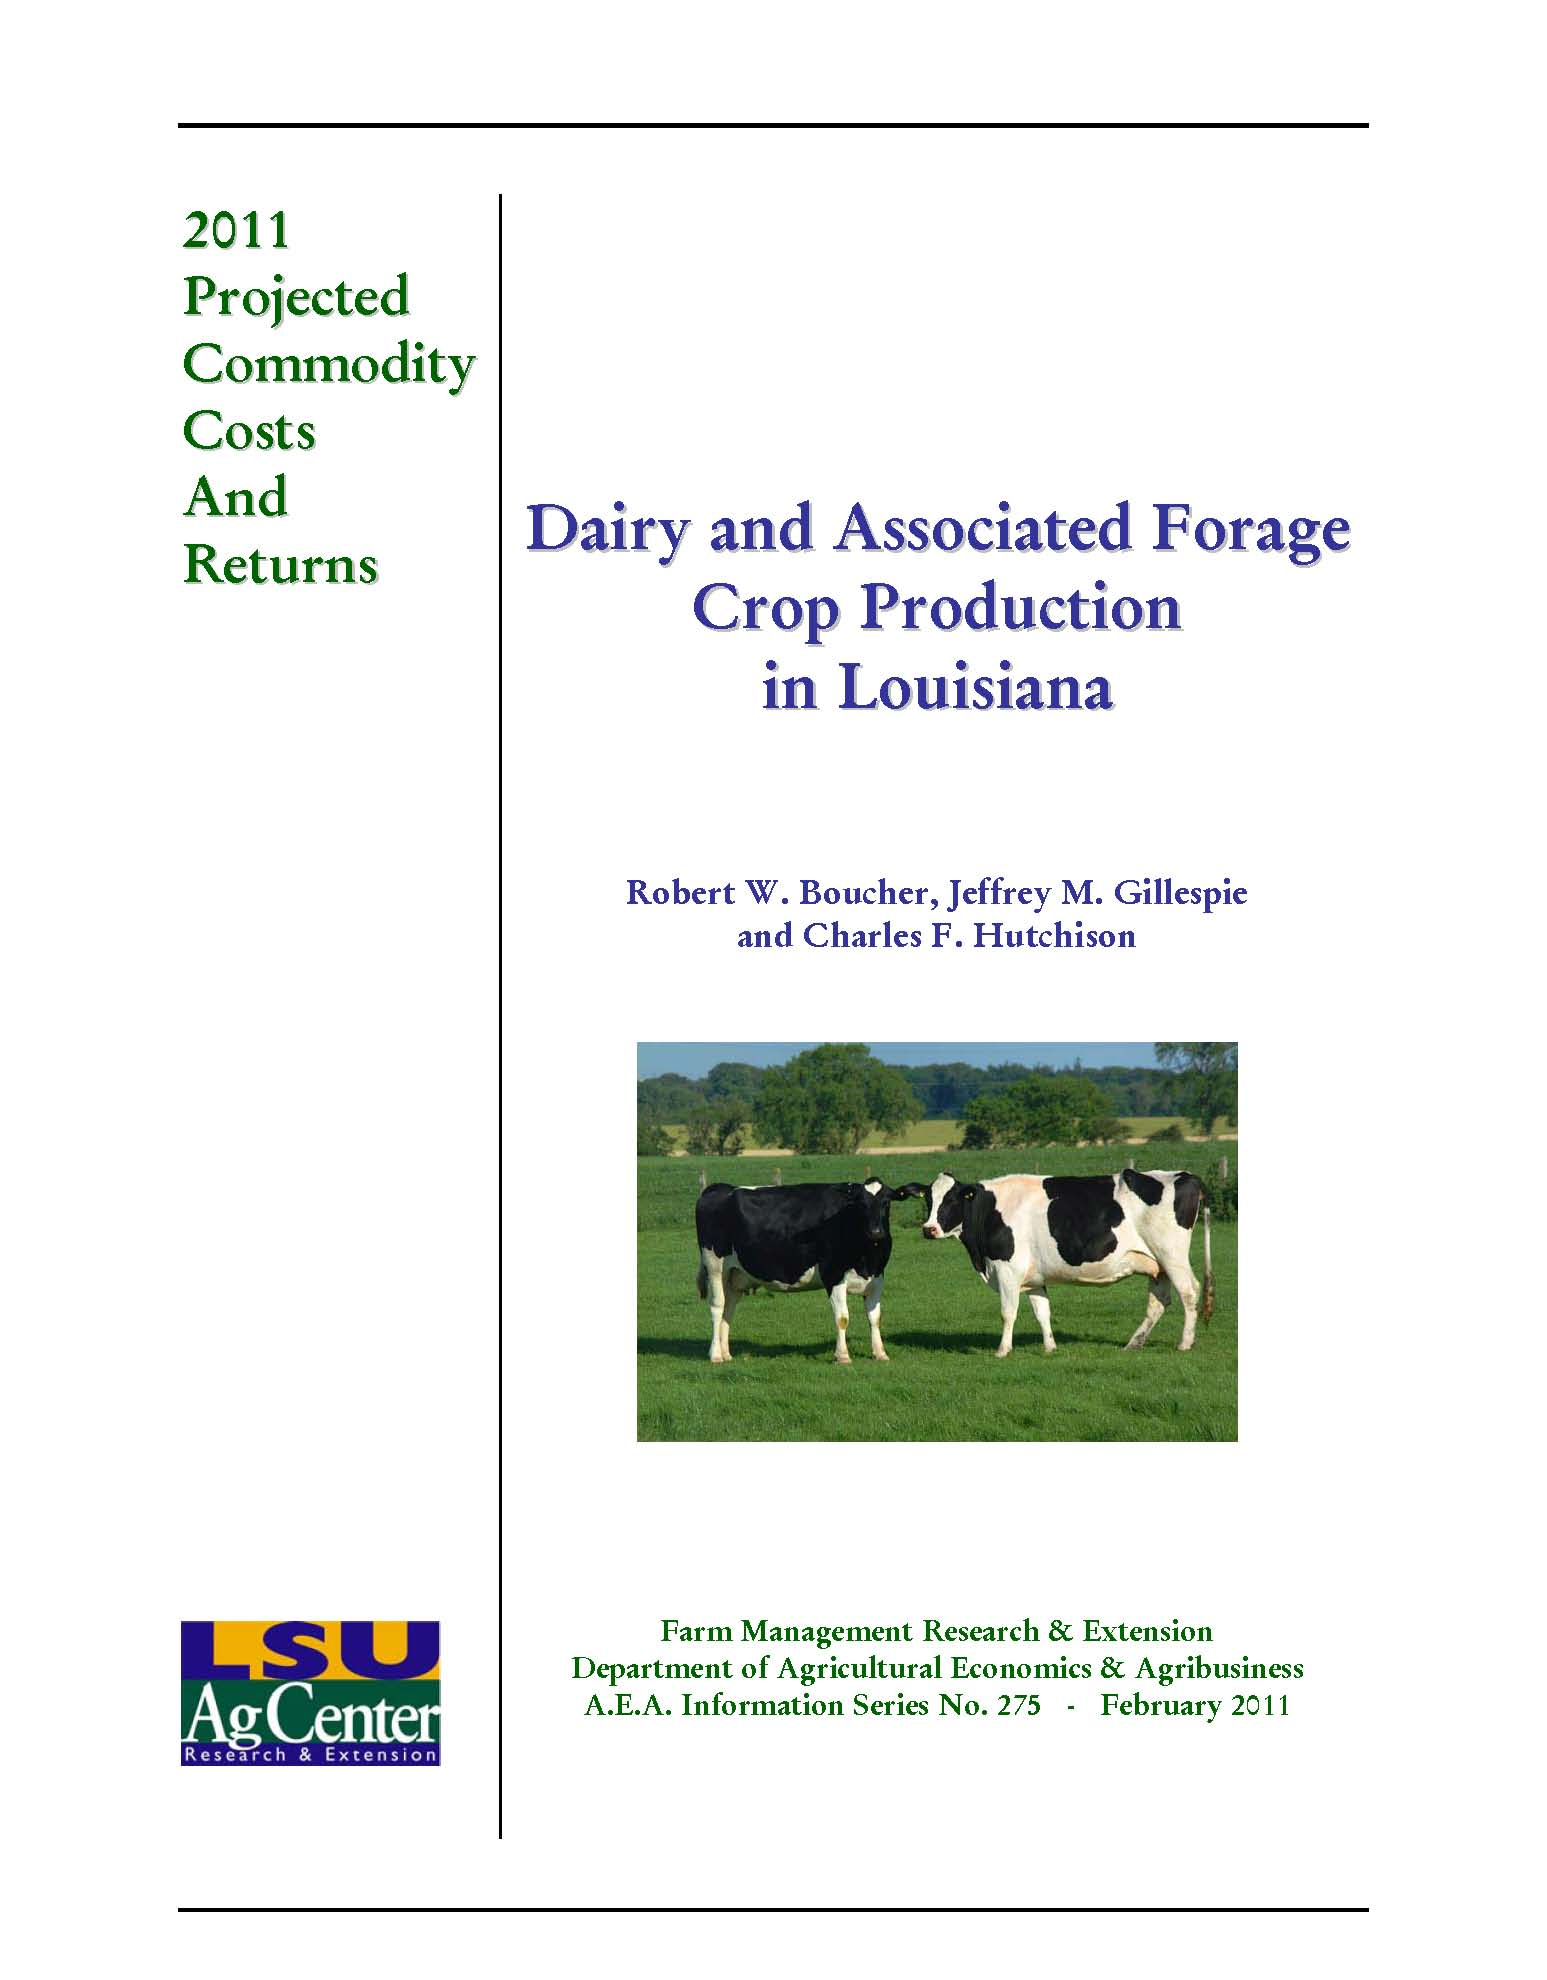 Projected Costs and Returns for Dairy and Associated Forage Crop Production in Louisiana 2011